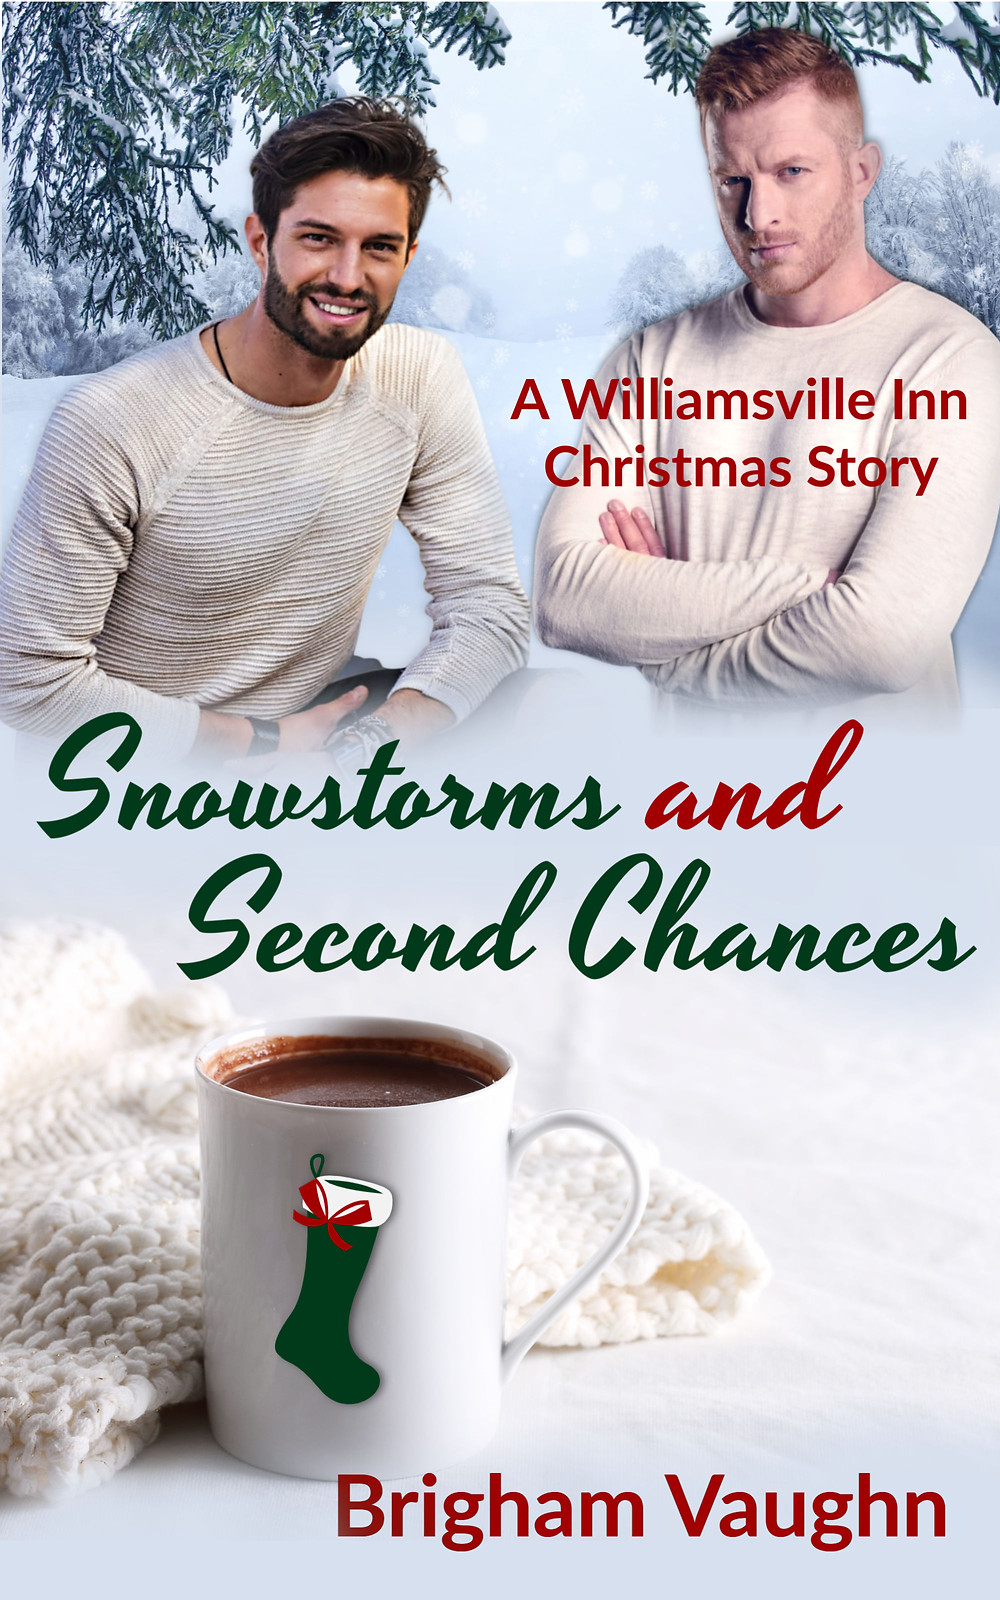 Snowstorms and Second Chances Cover  - Medium.jpg